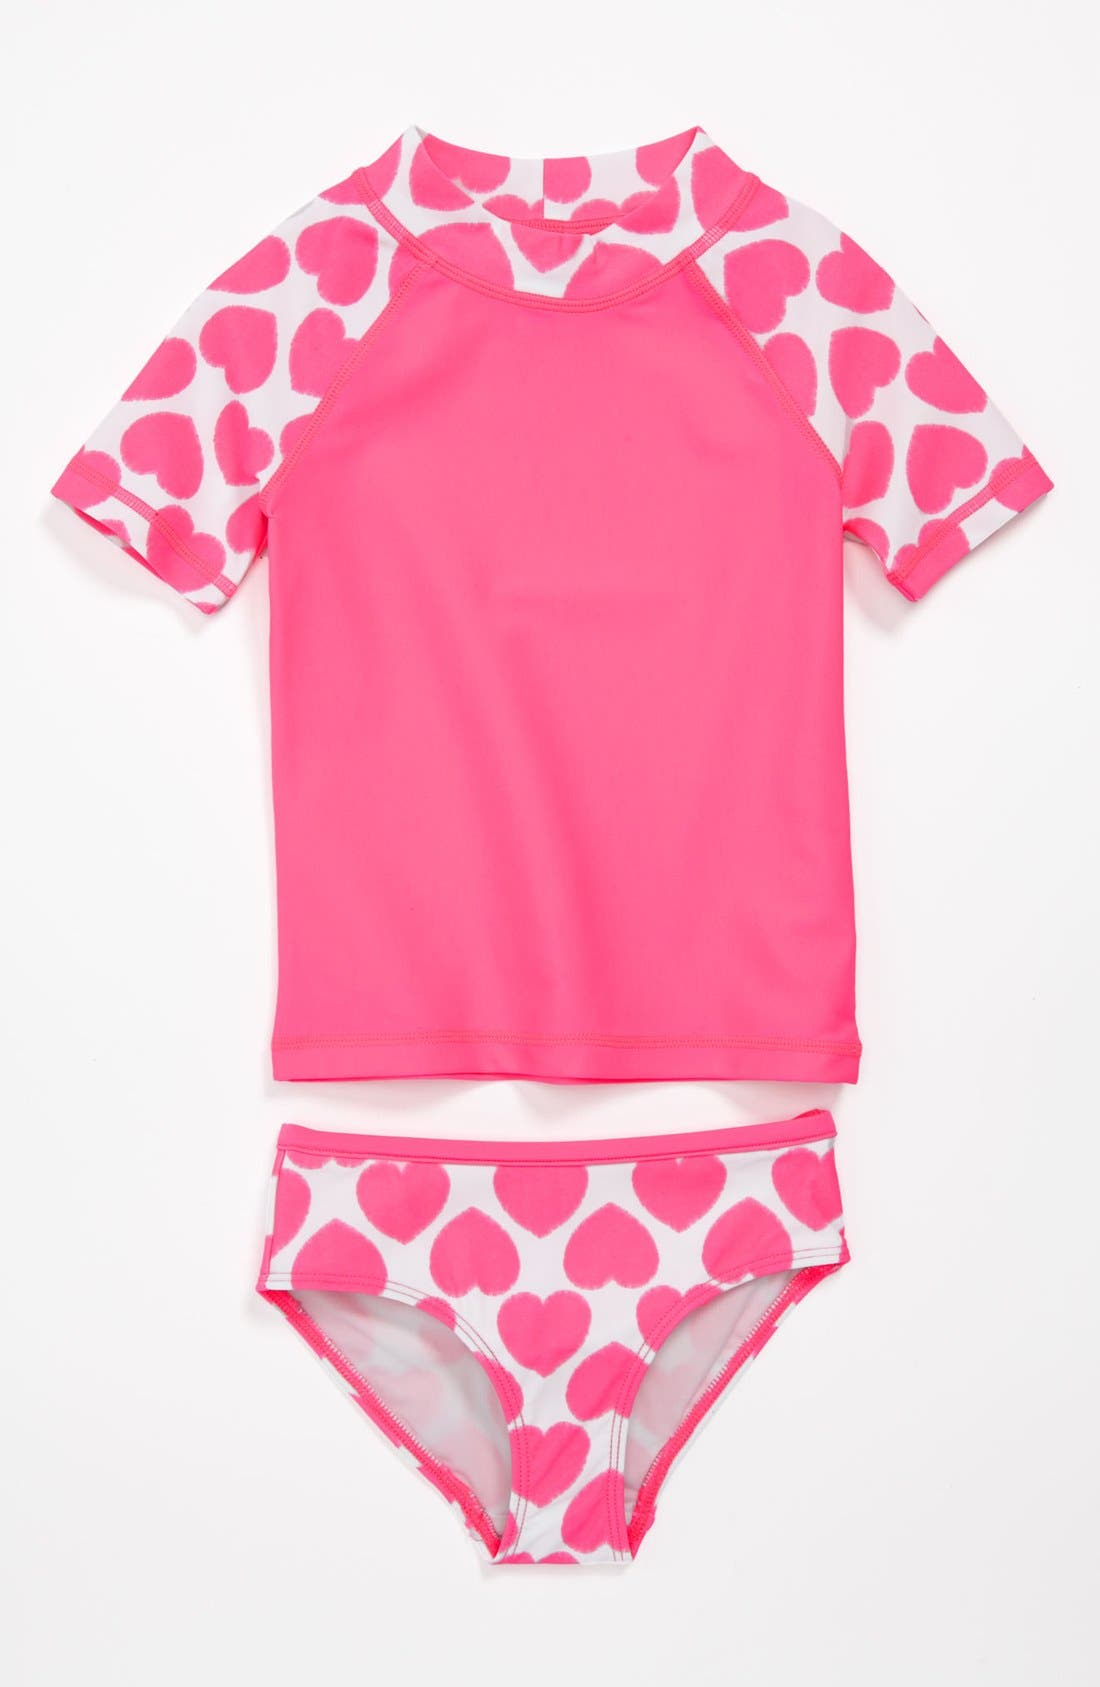 Alternate Image 1 Selected - Tucker + Tate Rashguard Shirt & Bottoms (Toddler Girls)